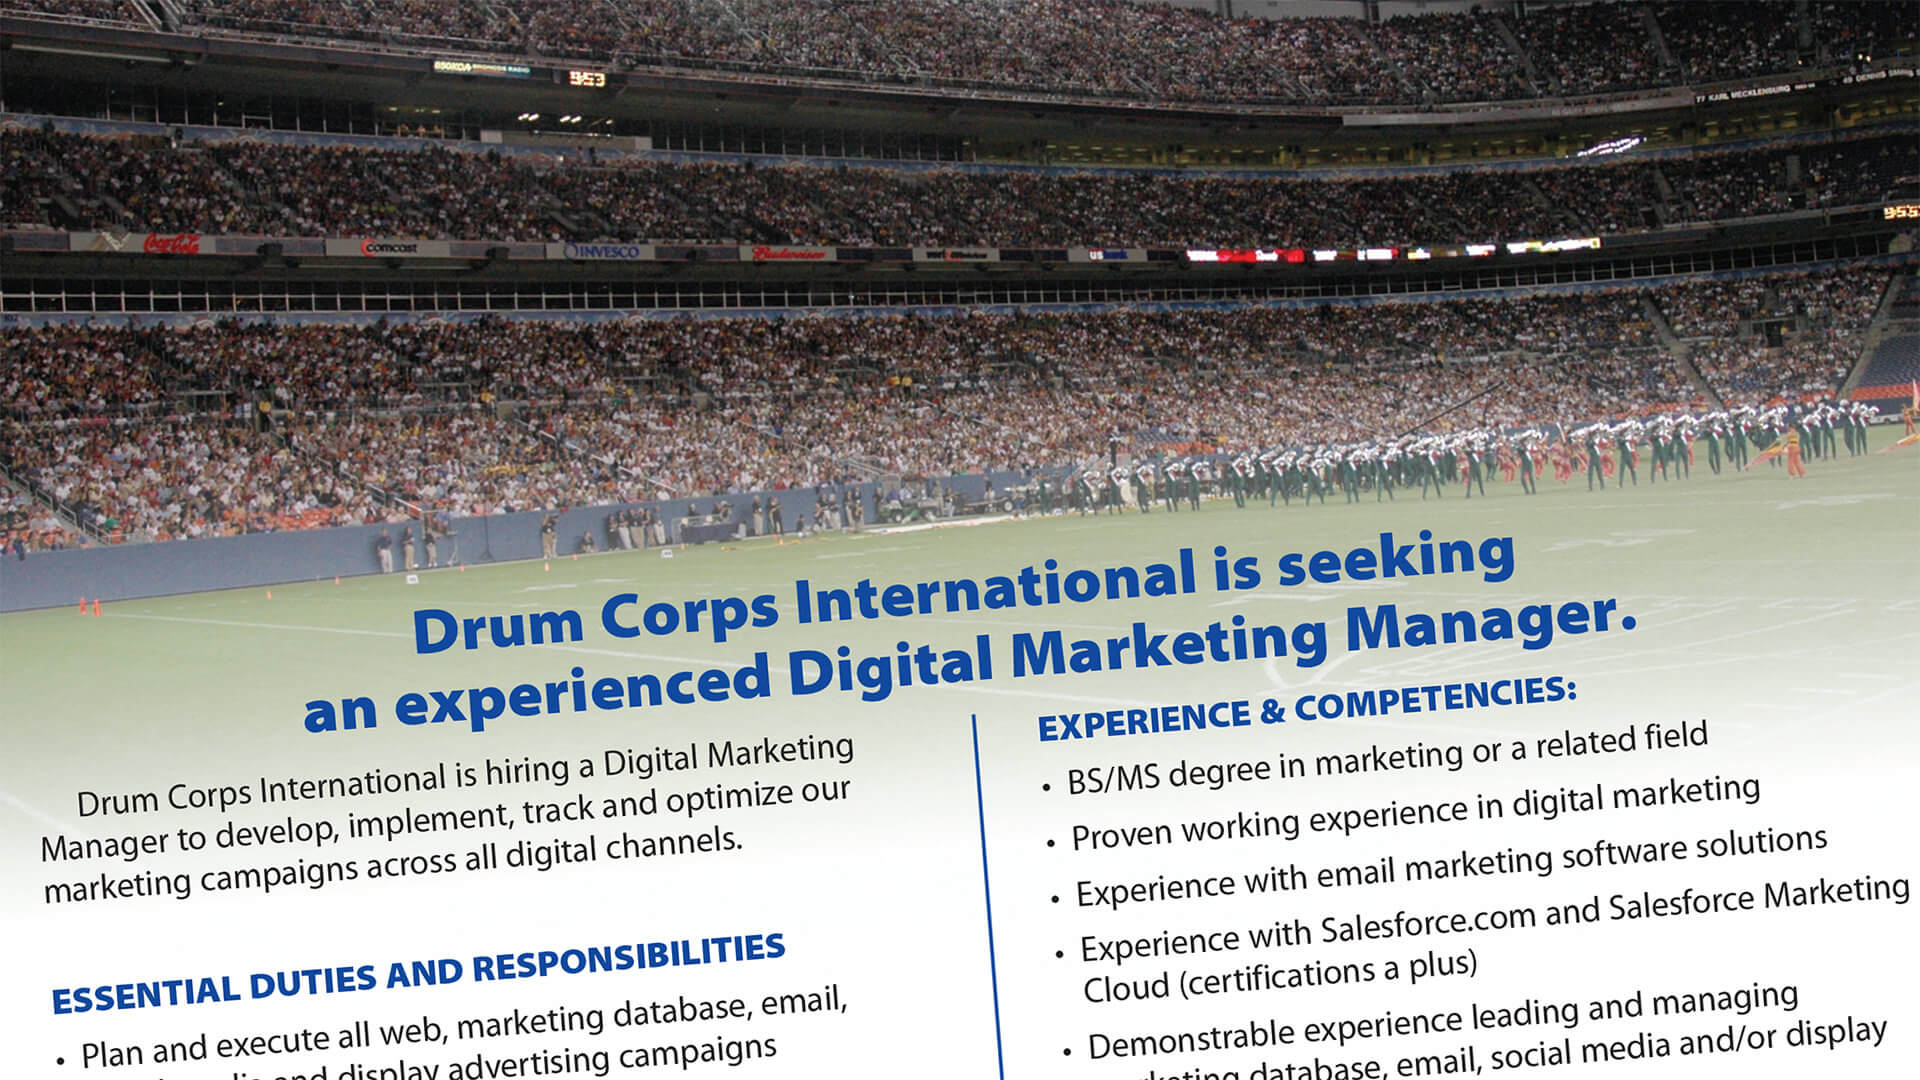 Drum Corps International employment opportunity